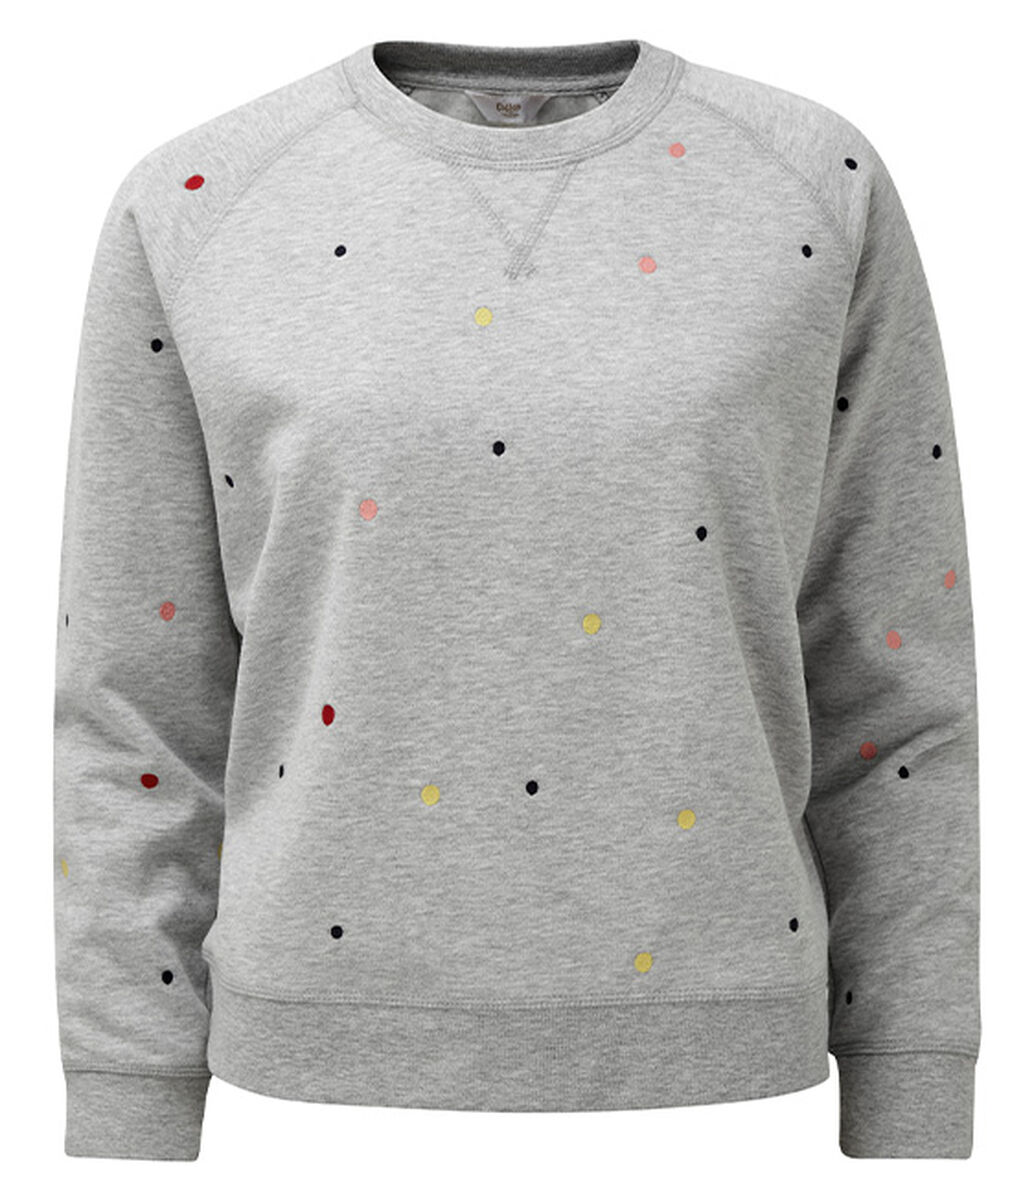 The Charisma Jumper | Charisma Crew Neck Sweatshirt | By Cotton Traders